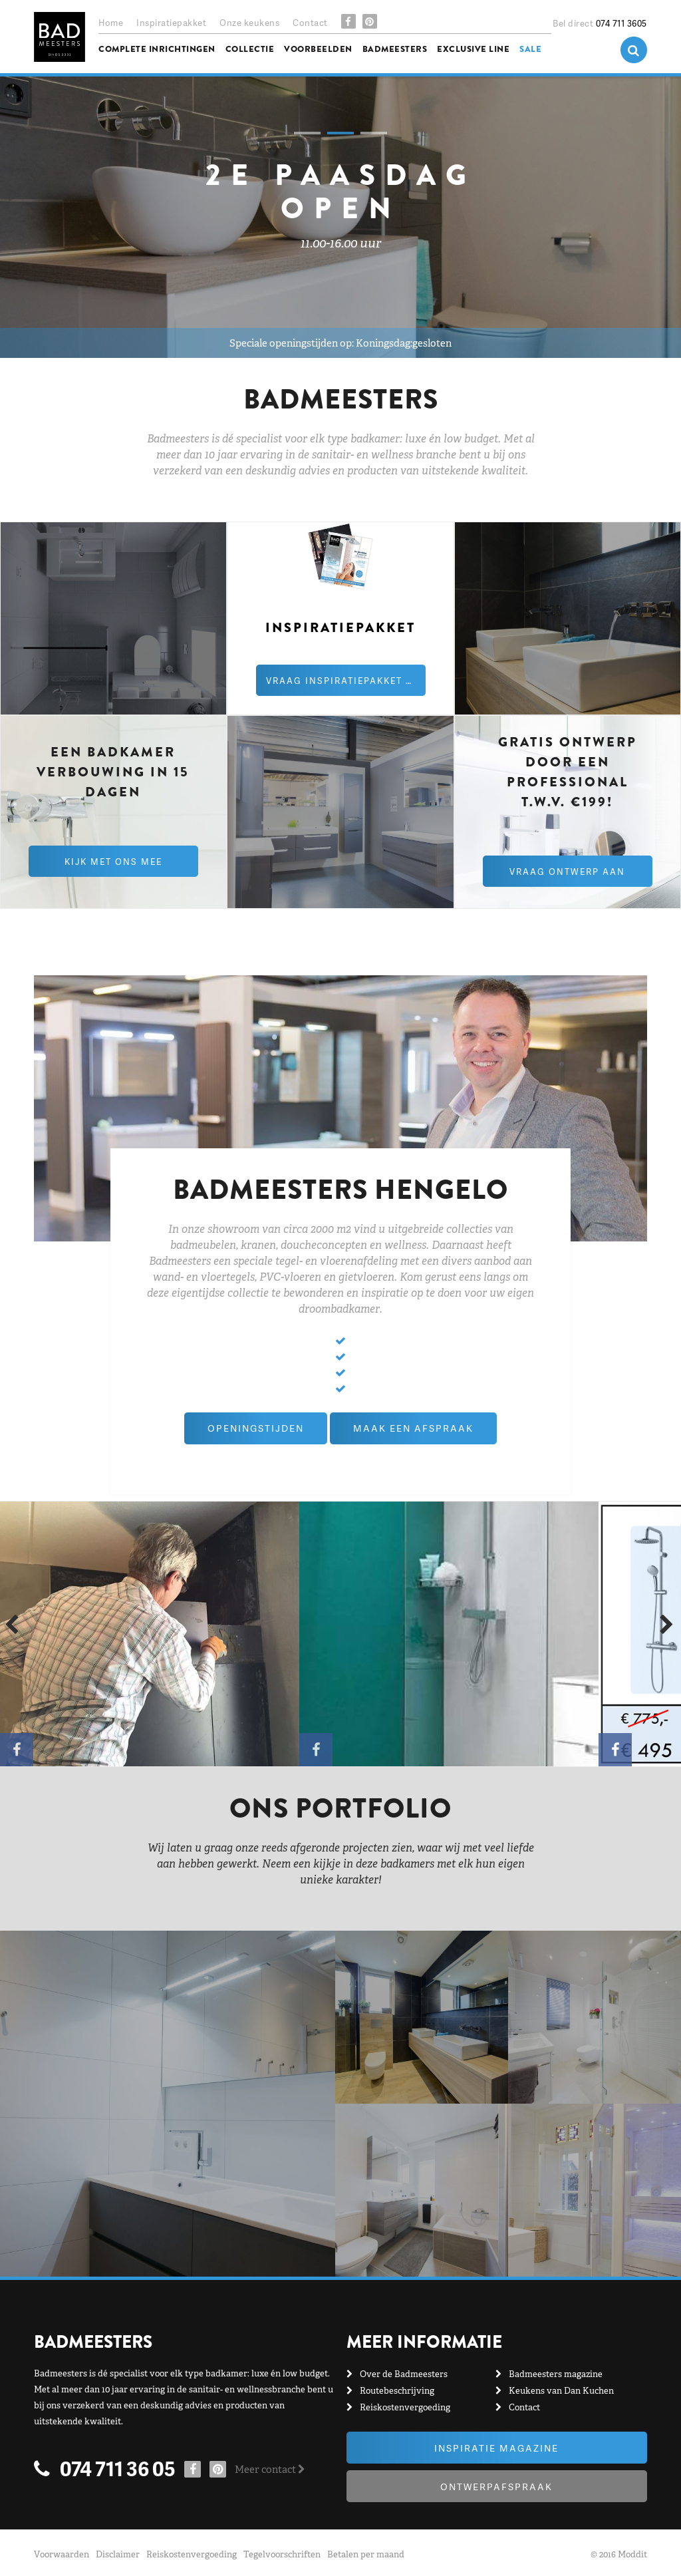 Happybad Badkamers Hengelo Competitors, Revenue and Employees ...